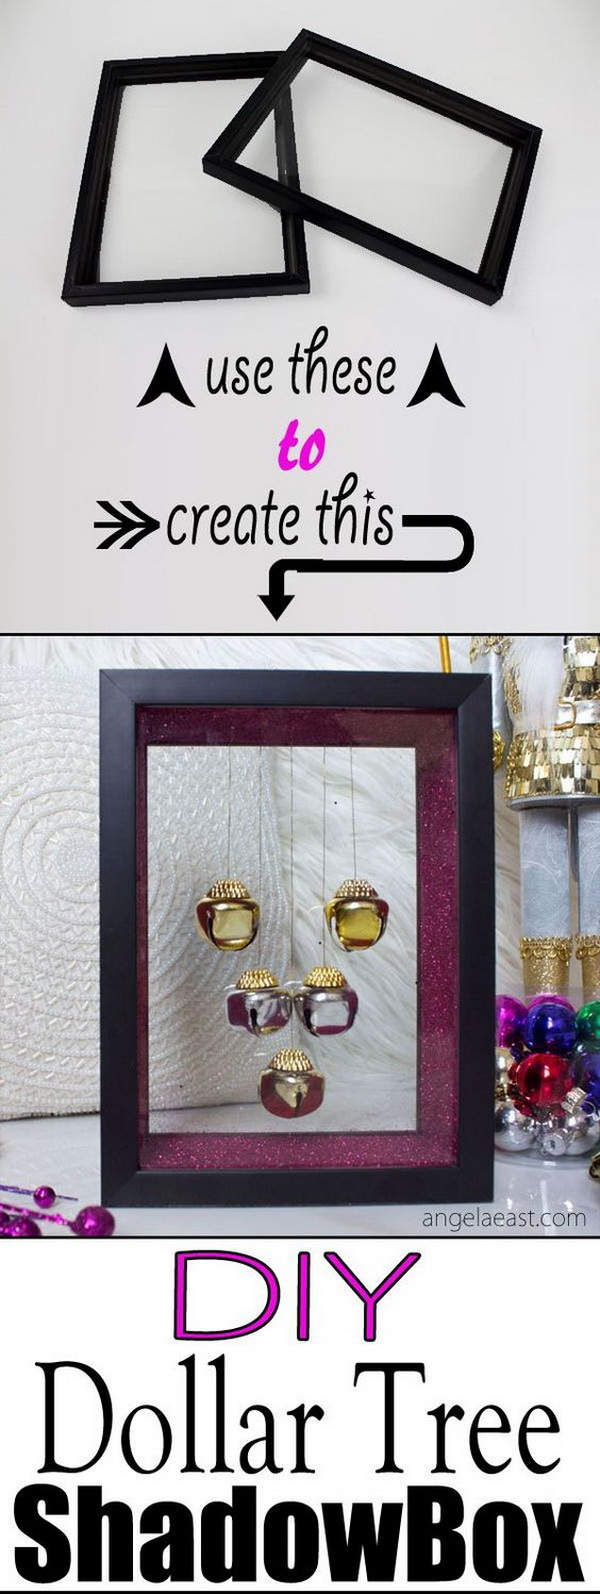 Jingle Bell Shadow Box. Create merriment and joy with a photo frame that includes jingle bells. Amazing holiday craft!